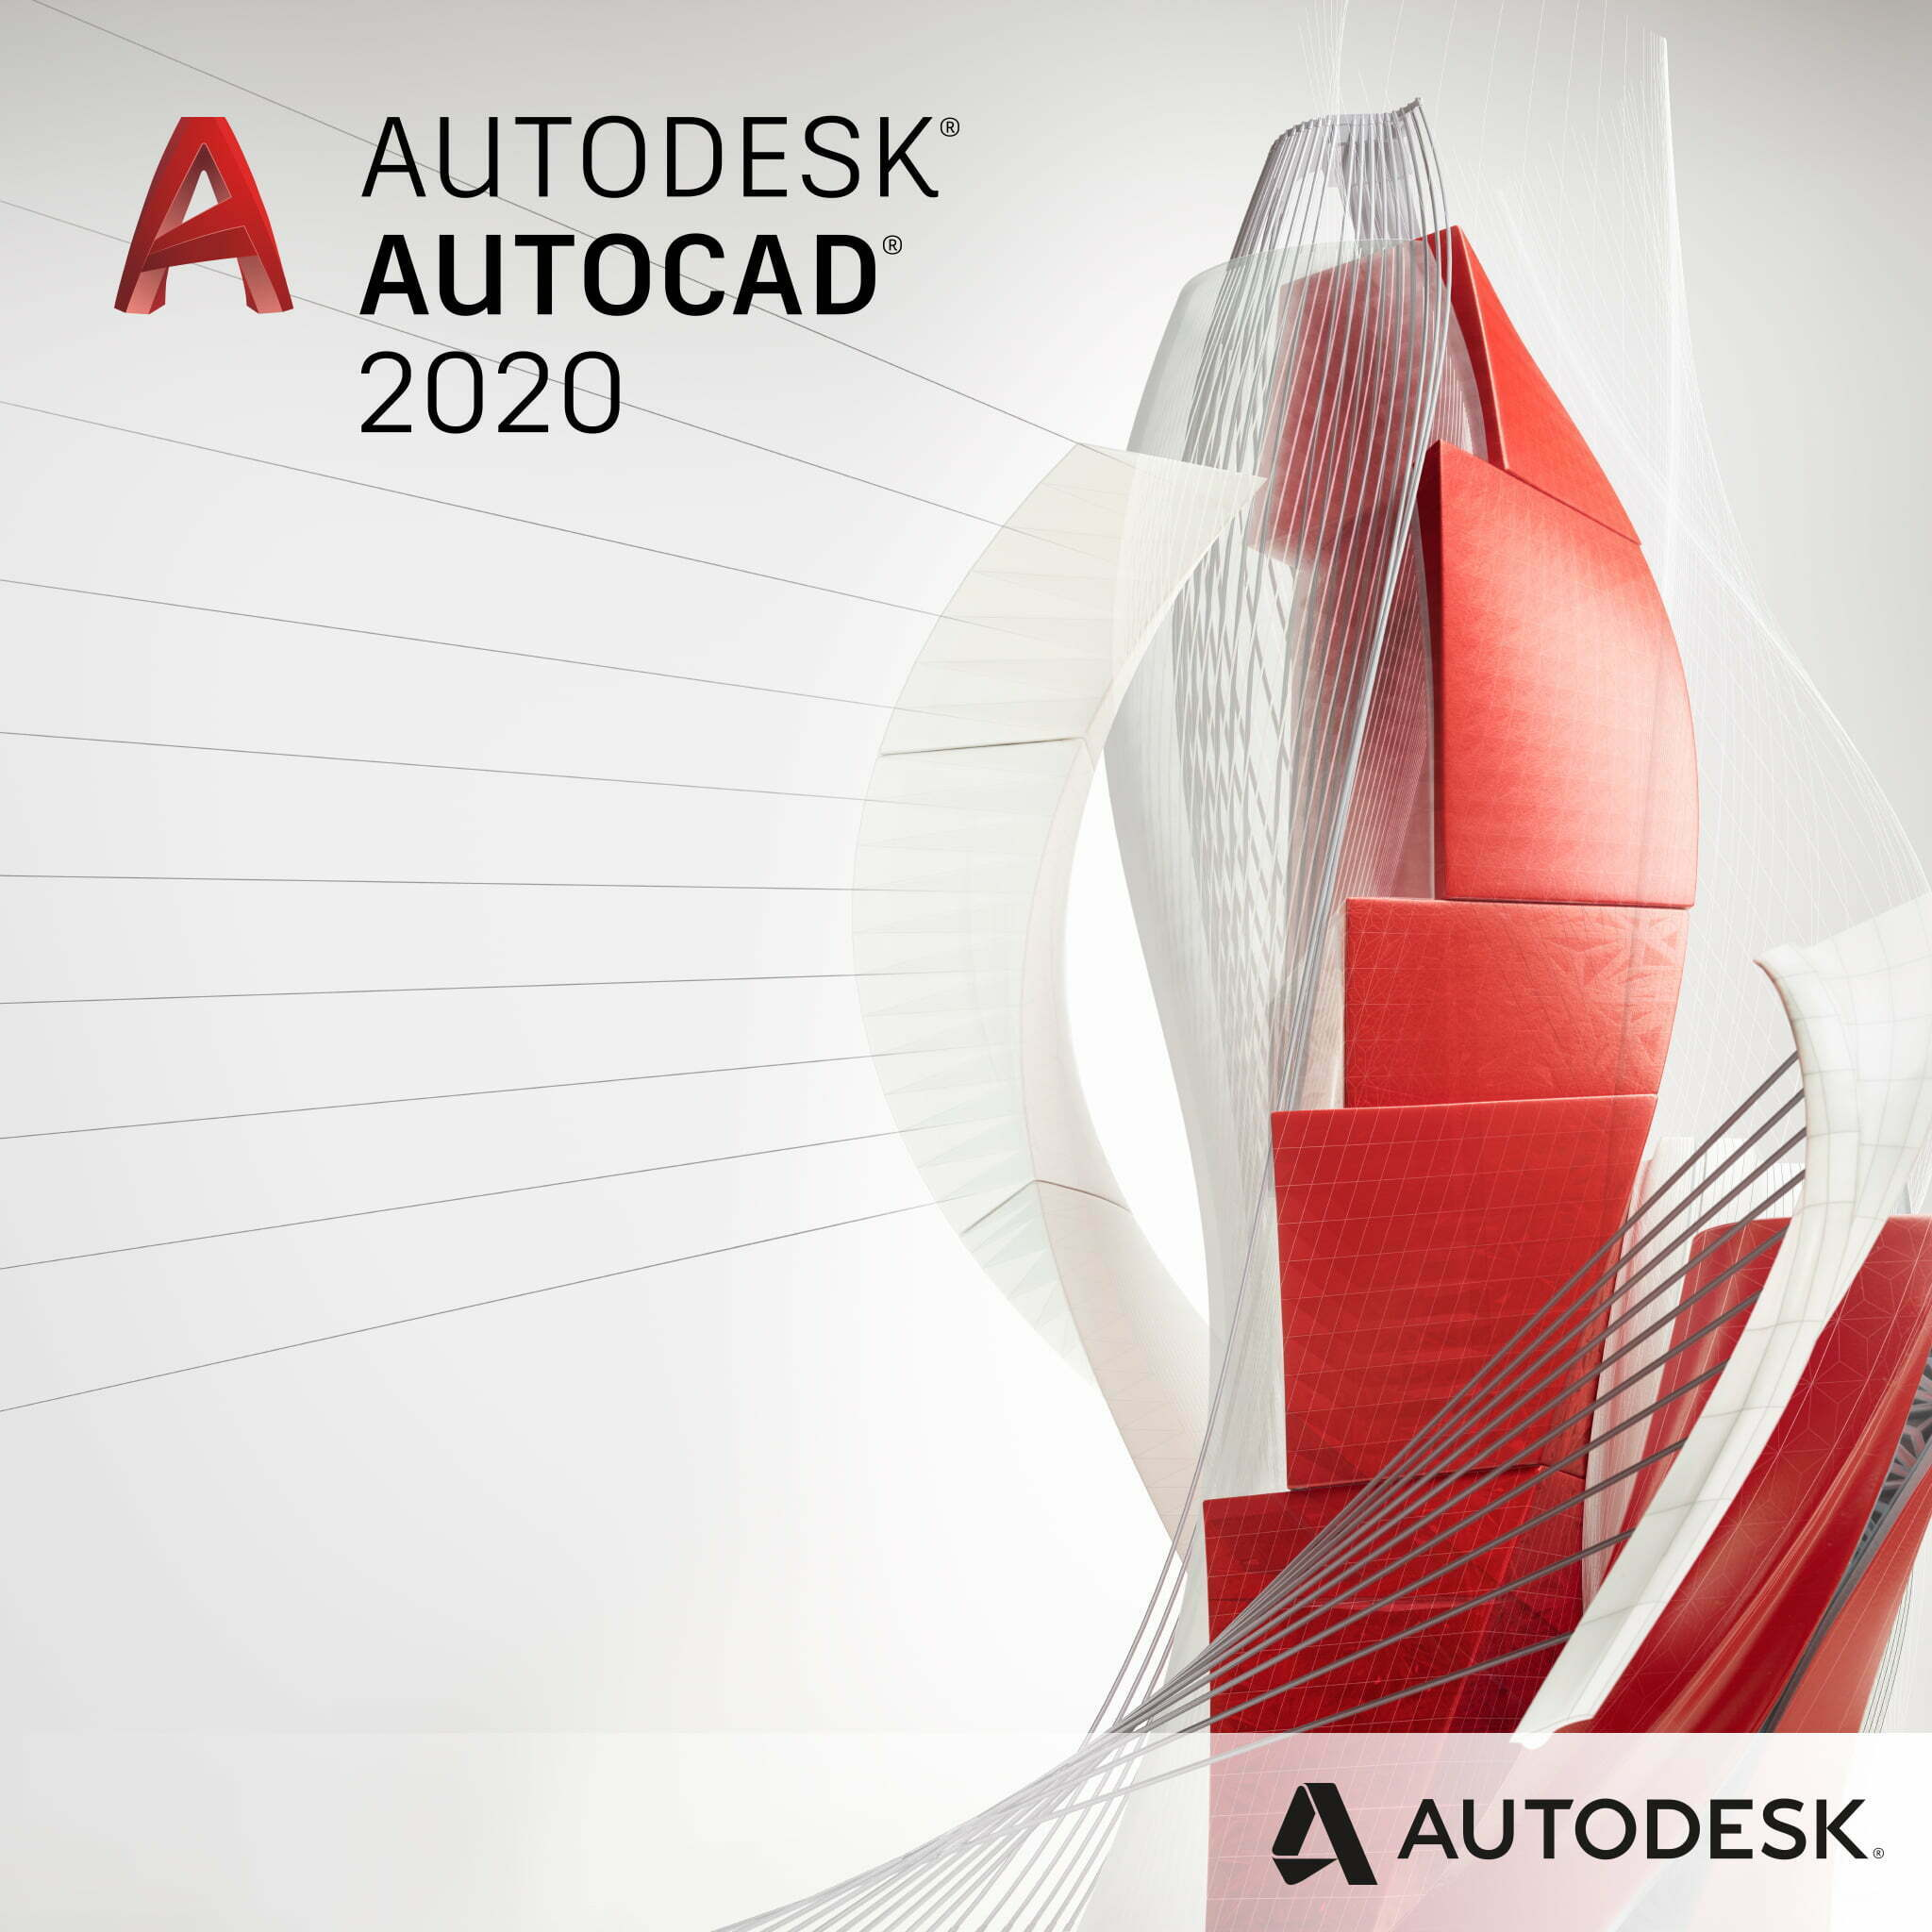 AutoCAD 2020 Including Specialised Toolsets